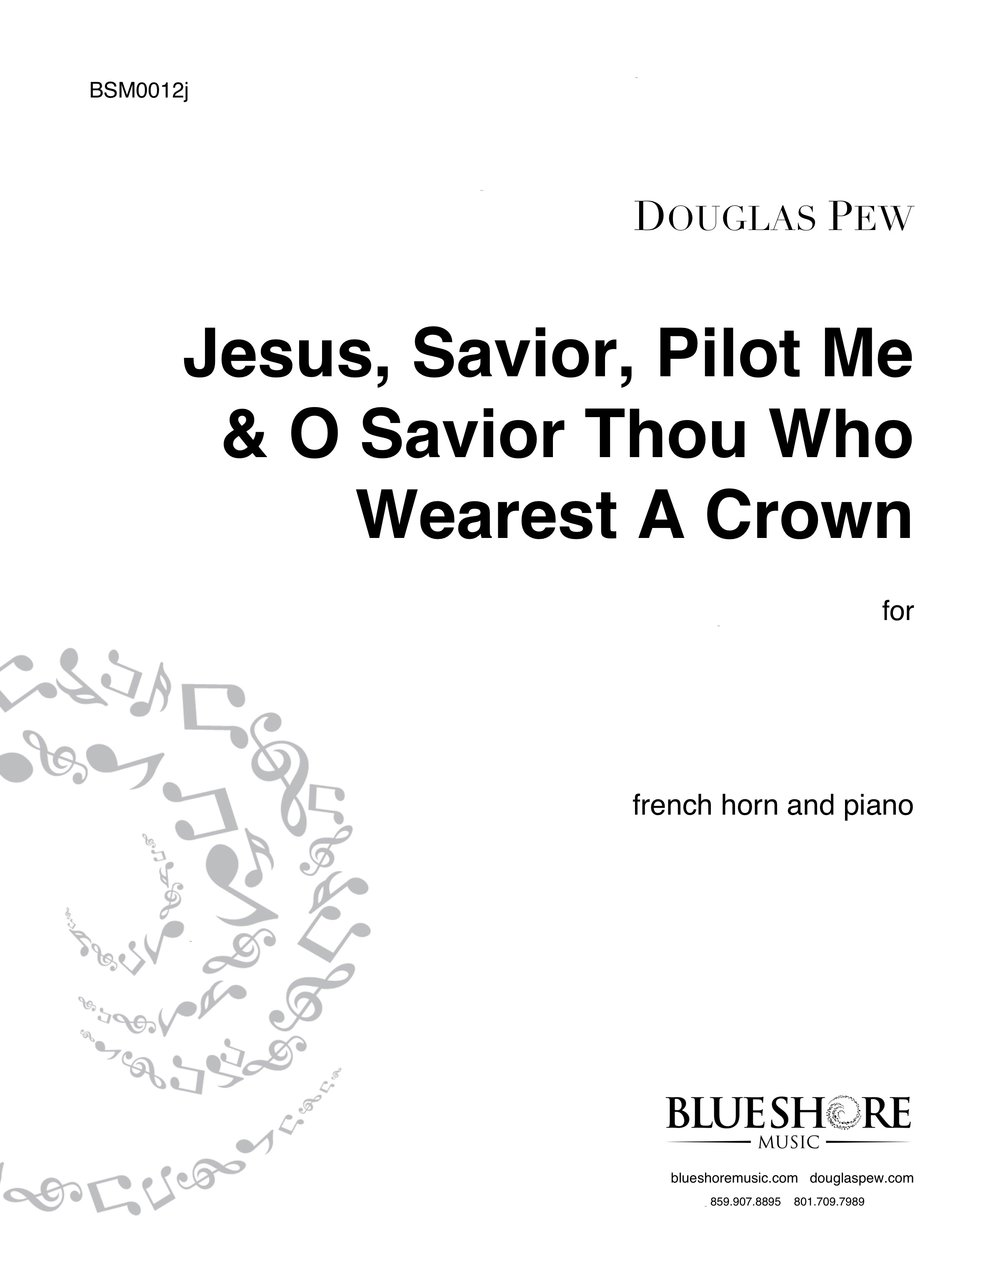 Jesus, Savior, Pilot Me and O Savior, Thou Who Wearest A Crown   - for Solo Woodwind and Piano